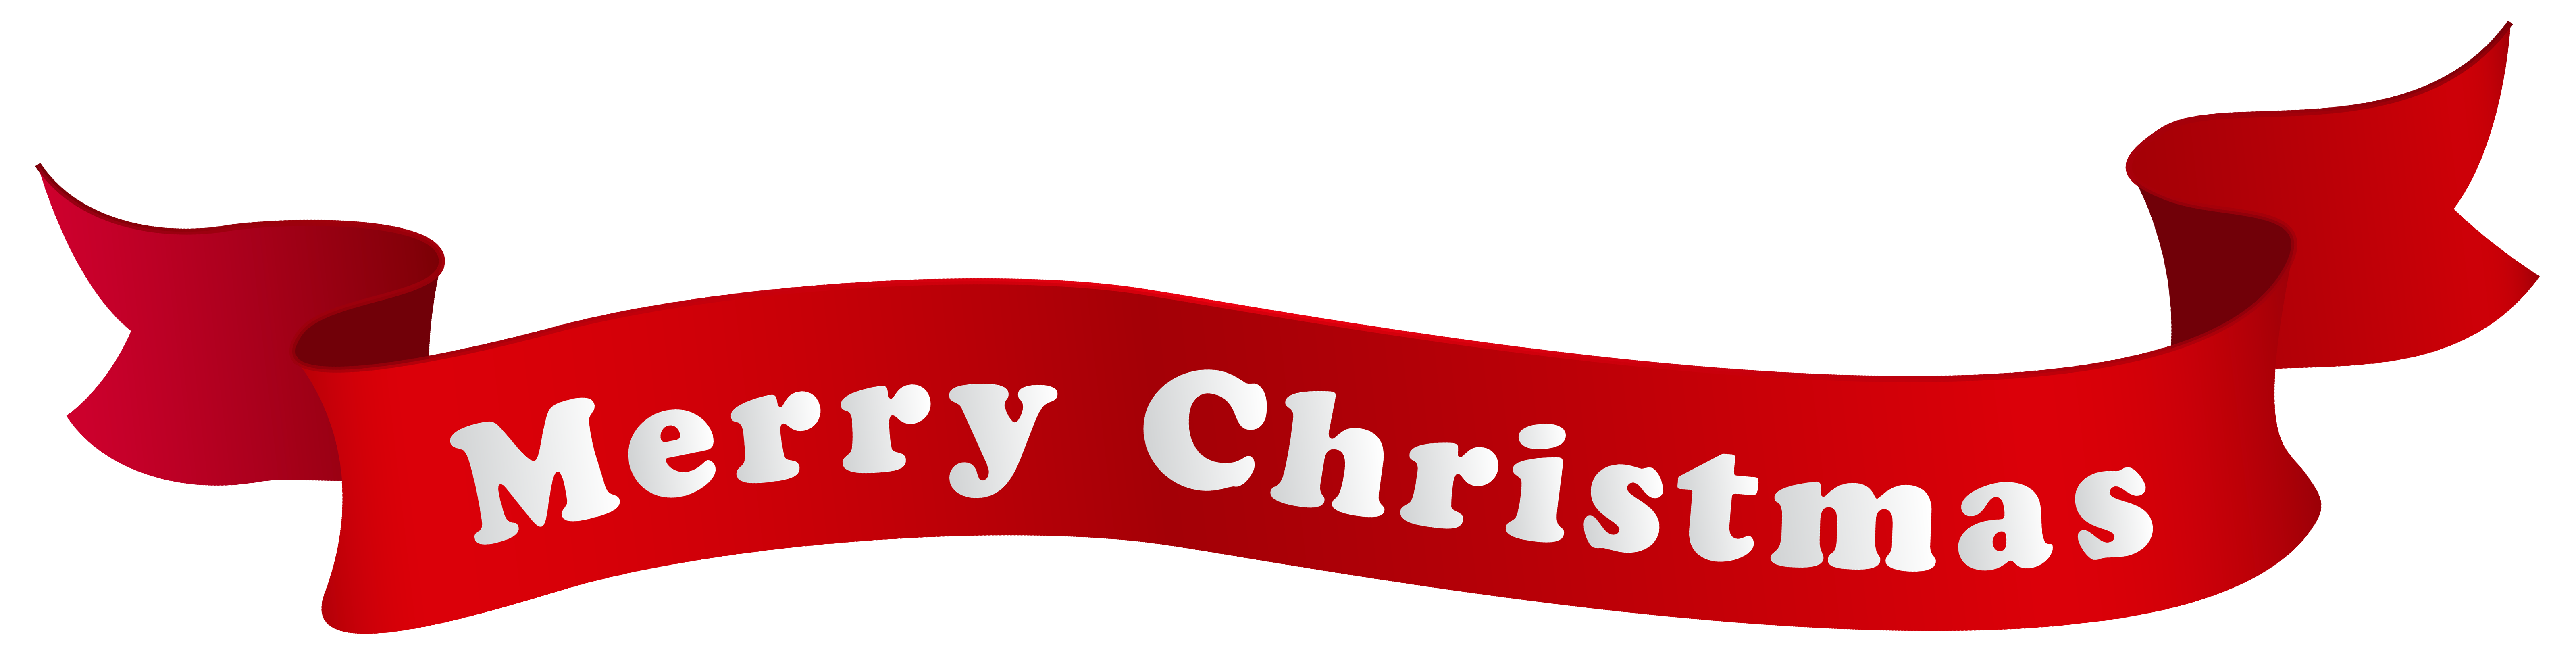 Holly clipart banner. Merry christmas cyberuse free